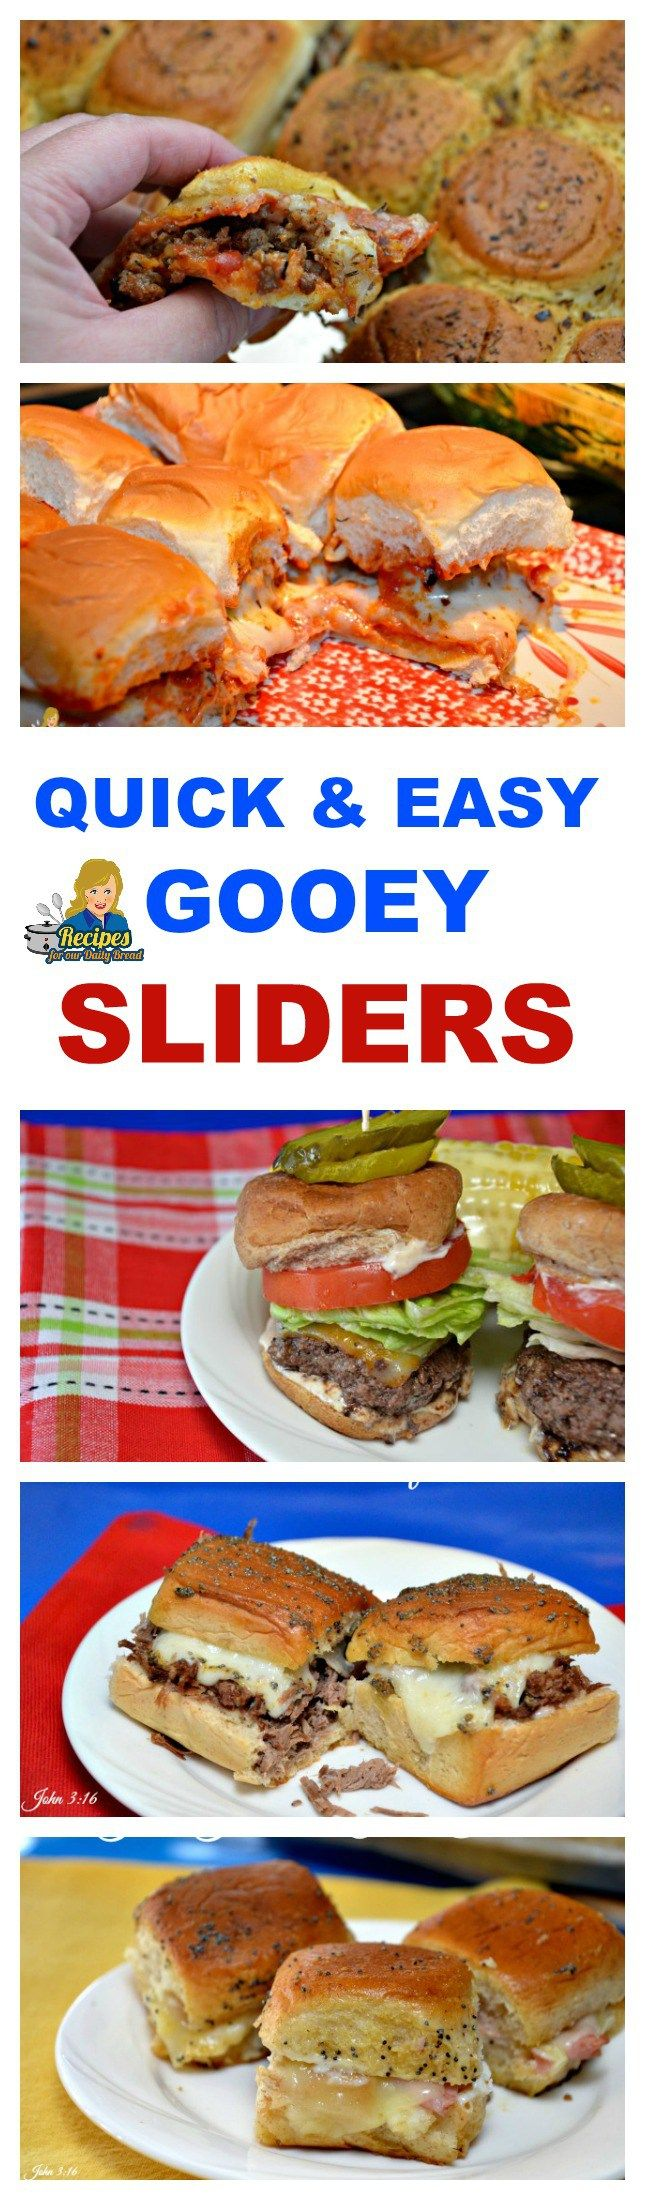 Are you looking for easy sliders to make for an appetizer, snack, or lunch?  They are perfect for watching football too.   What sliders will you find in this roundup?    How about some hot and gooey pizza, meatball, bison burgers, roast beef, ham & cheese, slow cooker pulled pork, buffalo chicken, bbq chicken and more.  Plus, some cold sliders including egg salad and chicken salad.  Most of these sliders are made on sweet Hawaiian rolls. SEE RECIPE…